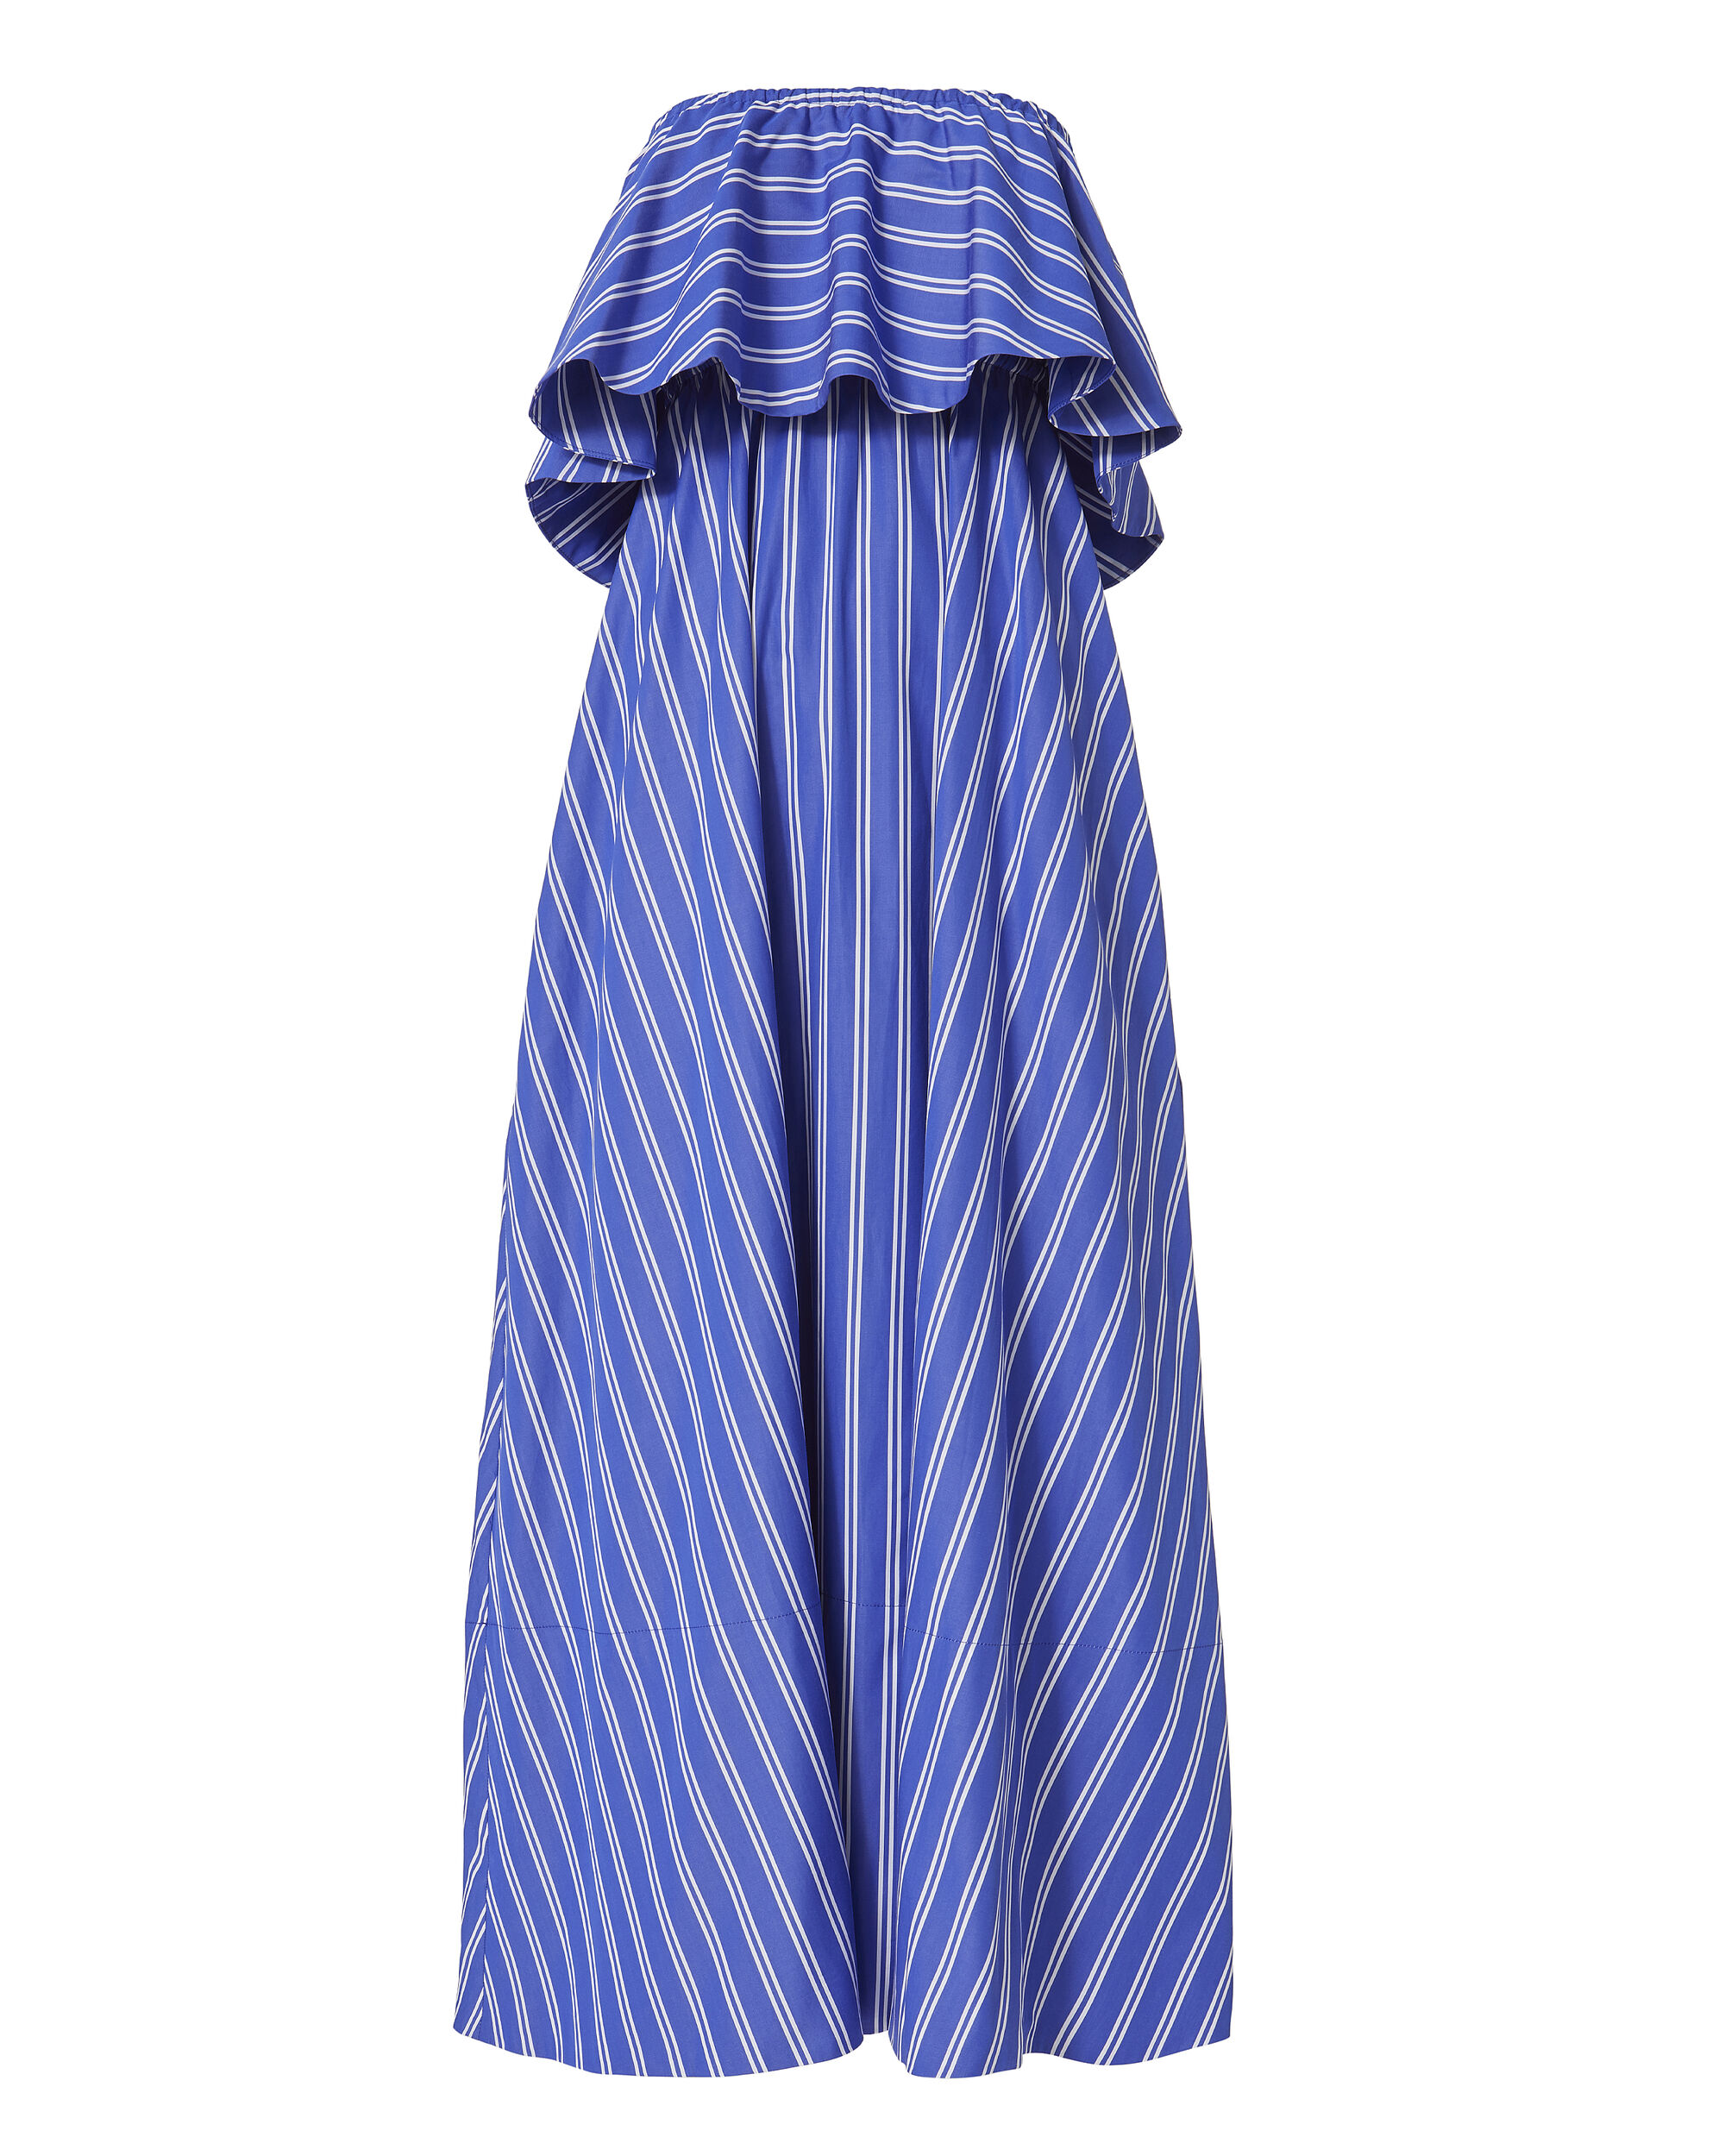 Ruffled Strapless Maxi Dress, PATTERN, hi-res